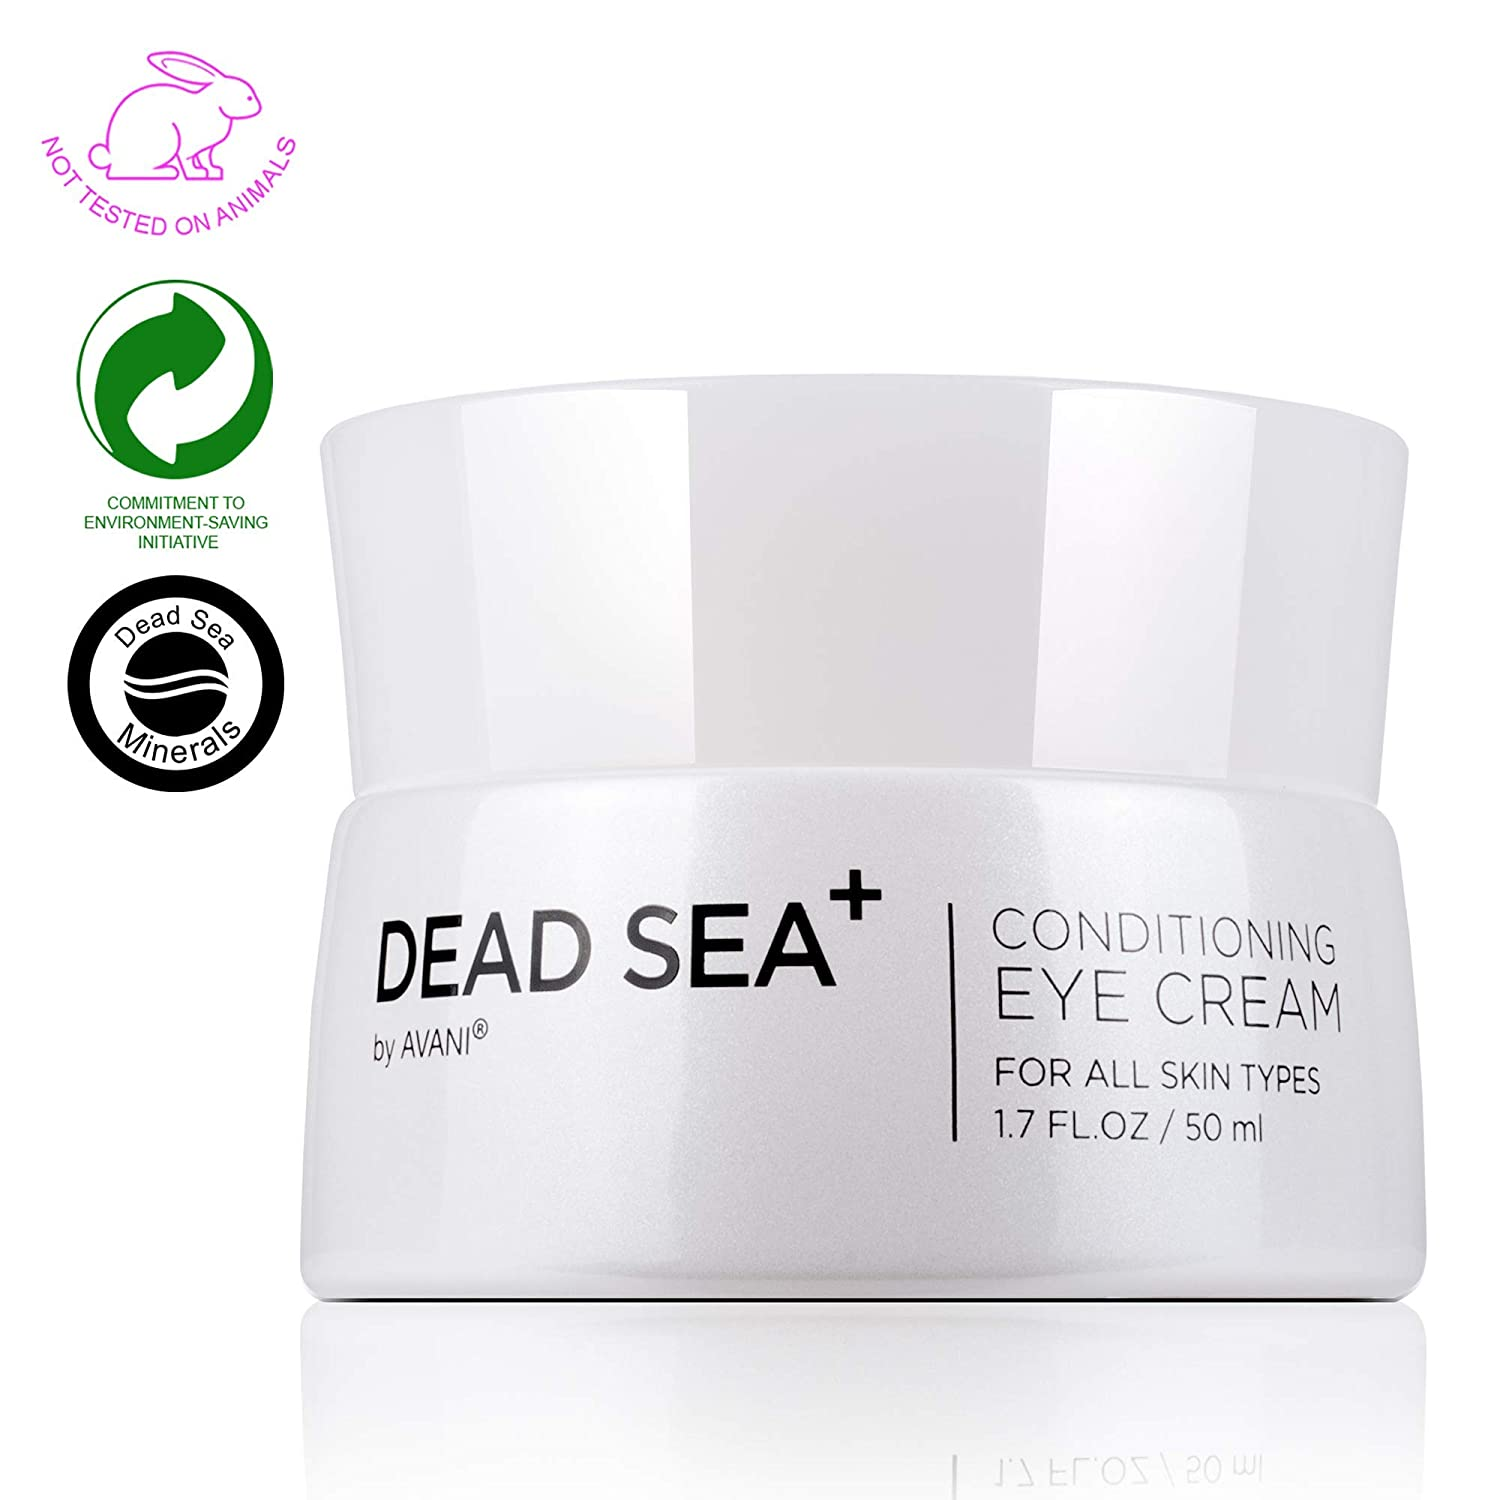 Dead Sea+ by AVANI Conditioning Eye Cream | Targets Typical Signs Of Aging, Improves Skin Elasticity, Reduces Fine Lines And Wrinkles | Dead Sea Minerals, Collagen, And Vitamin C - 1.7 fl oz